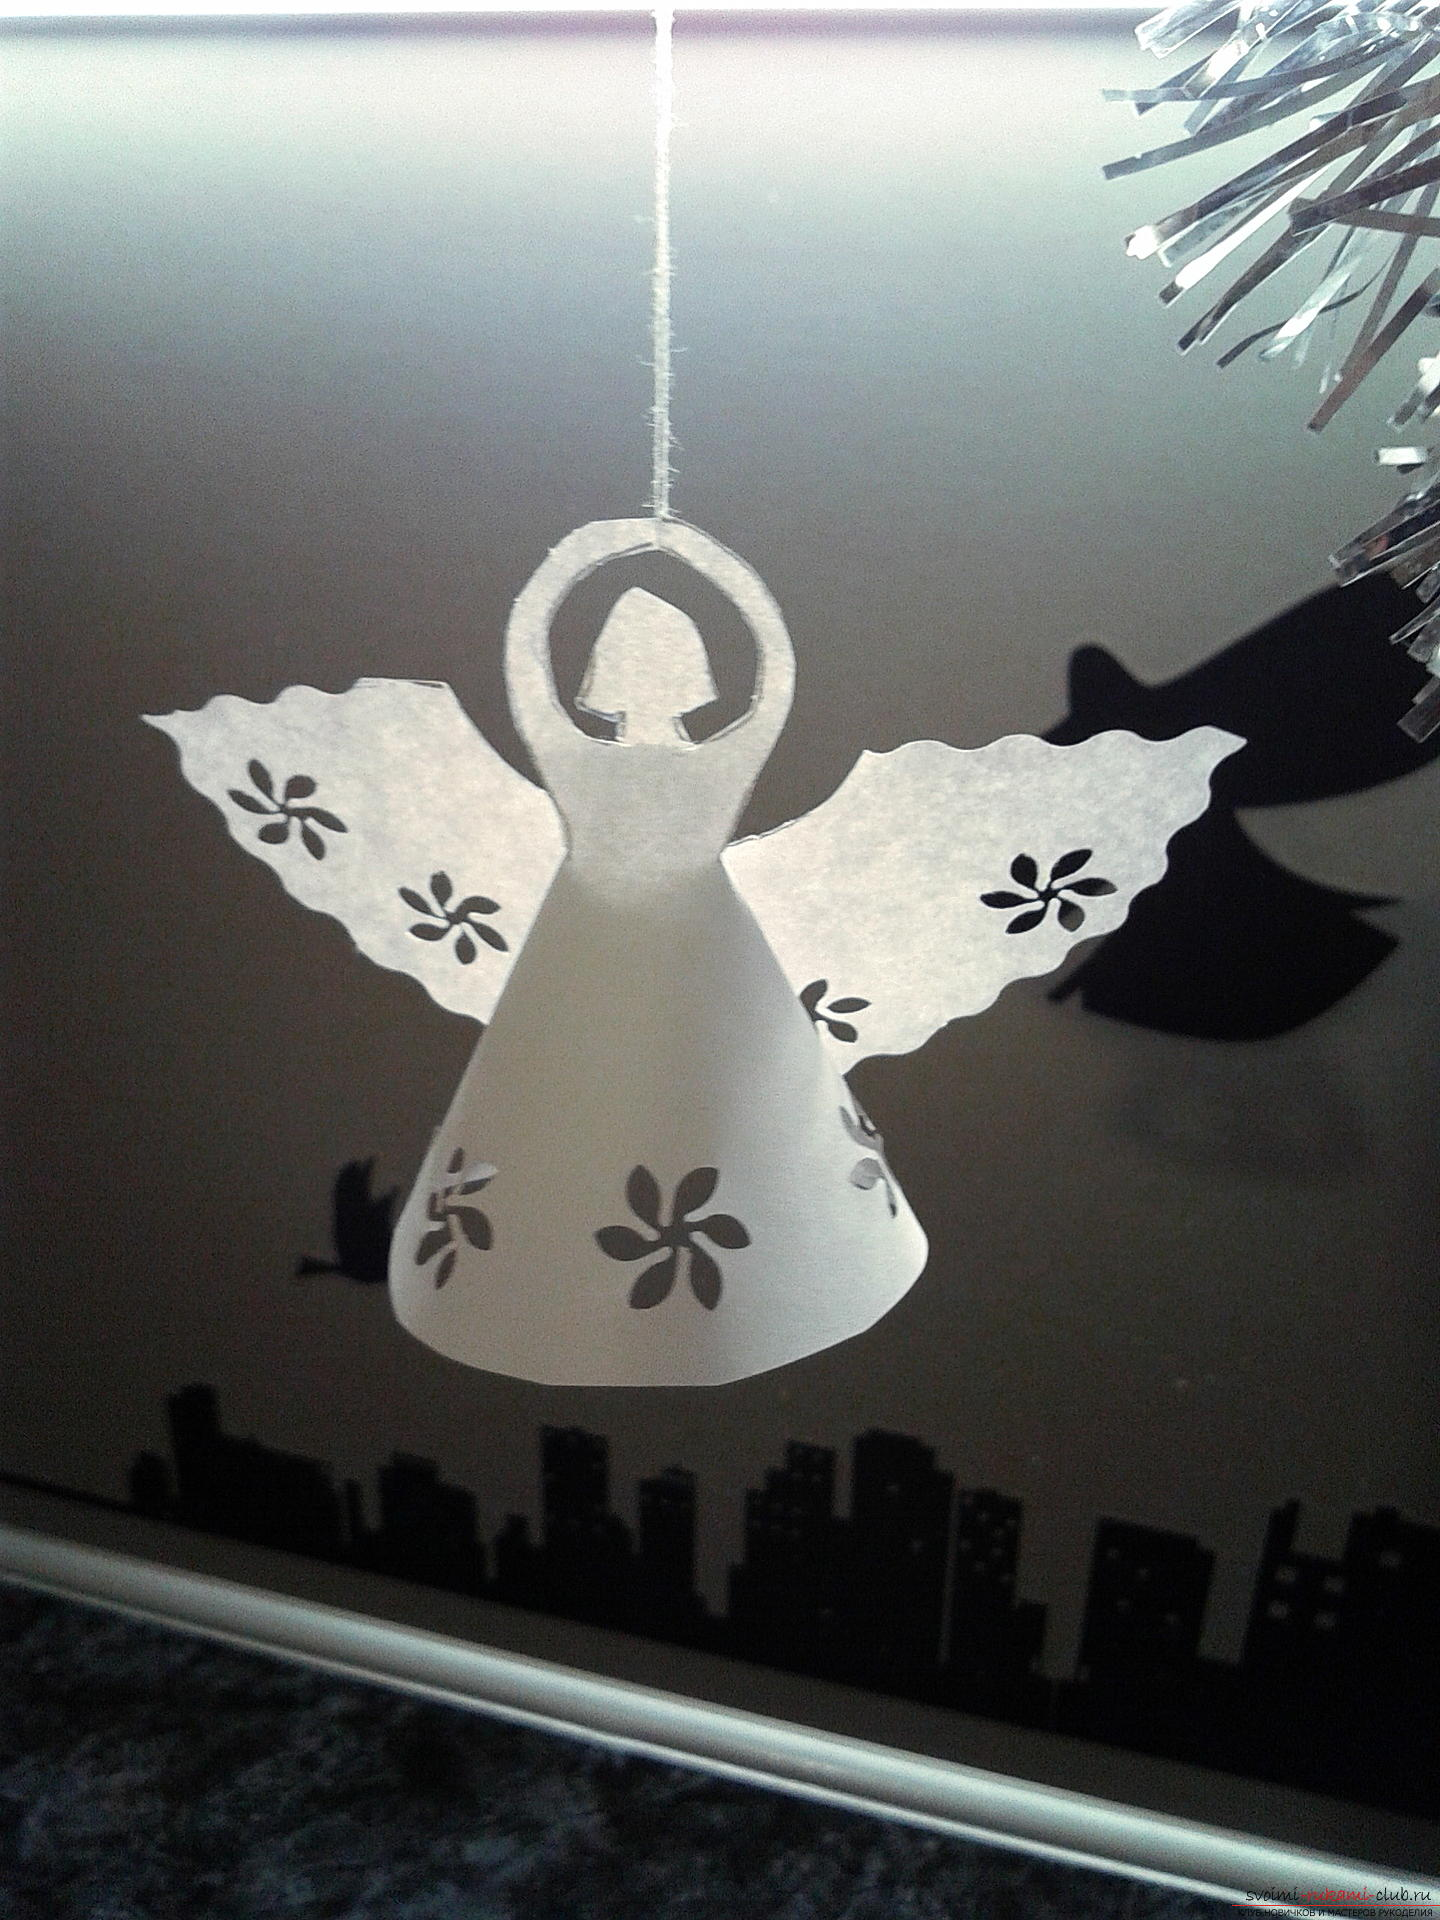 This master class describes the process of creating New Year's handicrafts. Cute angels made of paper were created as decorations on a Christmas tree .. Photo №14